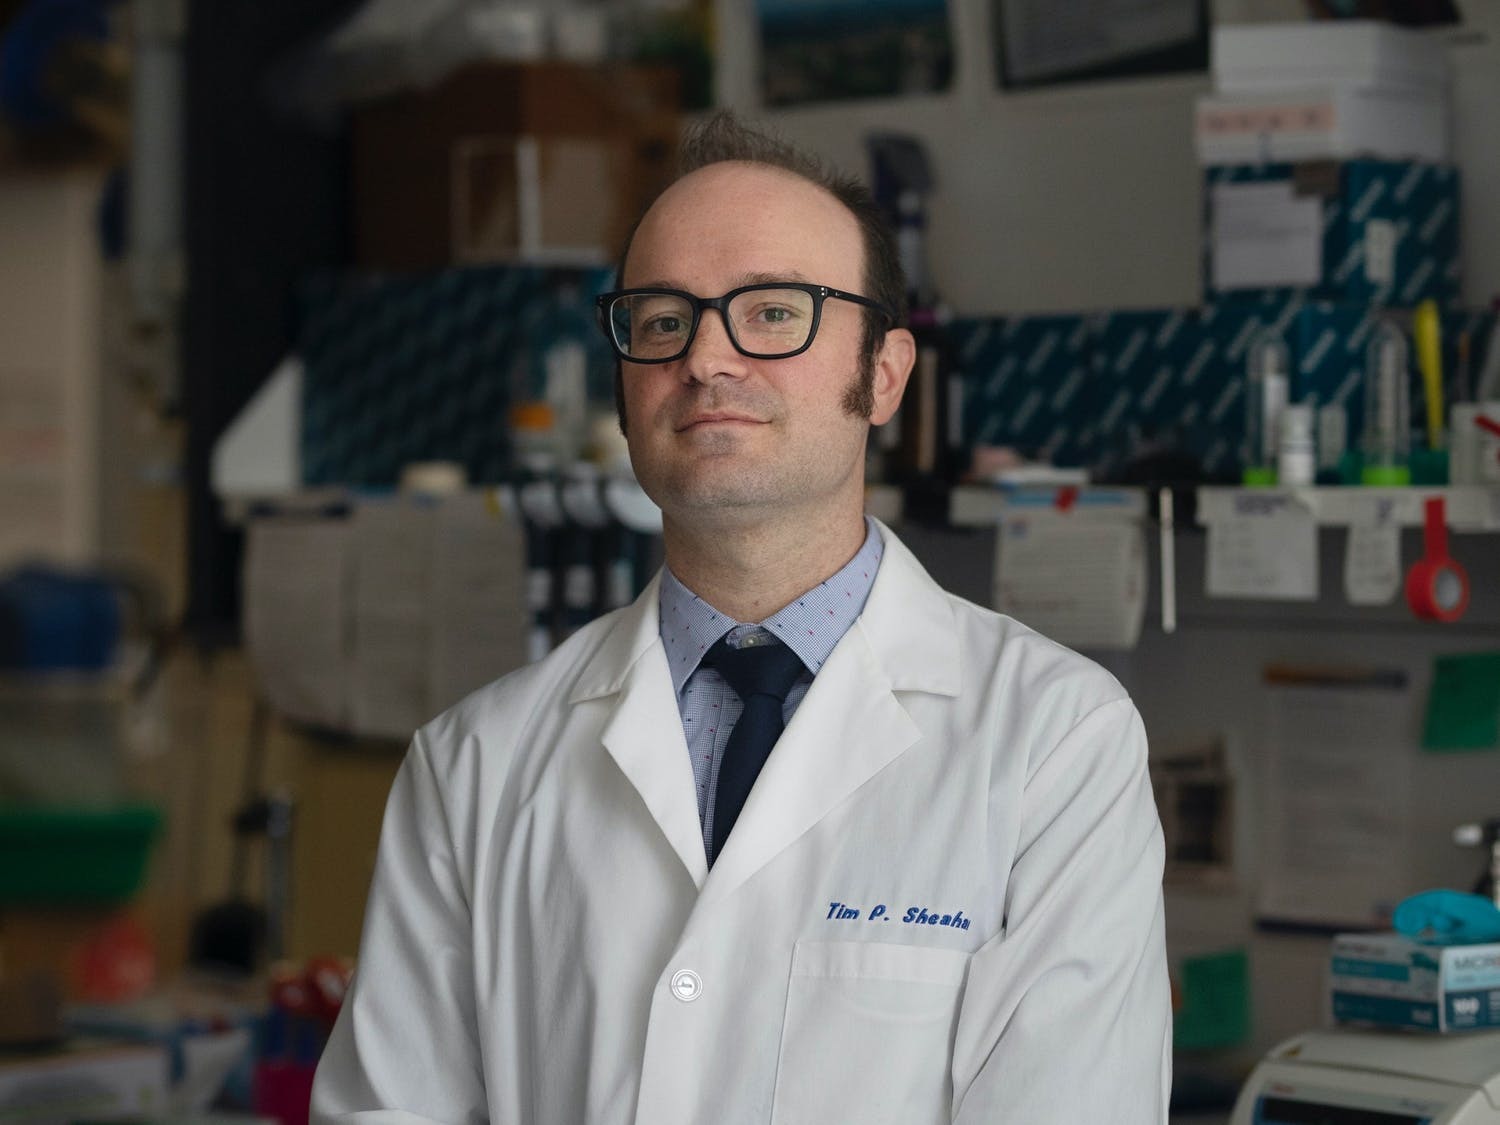 Timothy Sheahan, an assistant professor in UNC Gillings School of Global Public Health's department of epidemiology, has been working closely with coronaviruses prior to the pandemic with his work on the creation of anti-viral drugs. Photo courtesy of Sheahan.